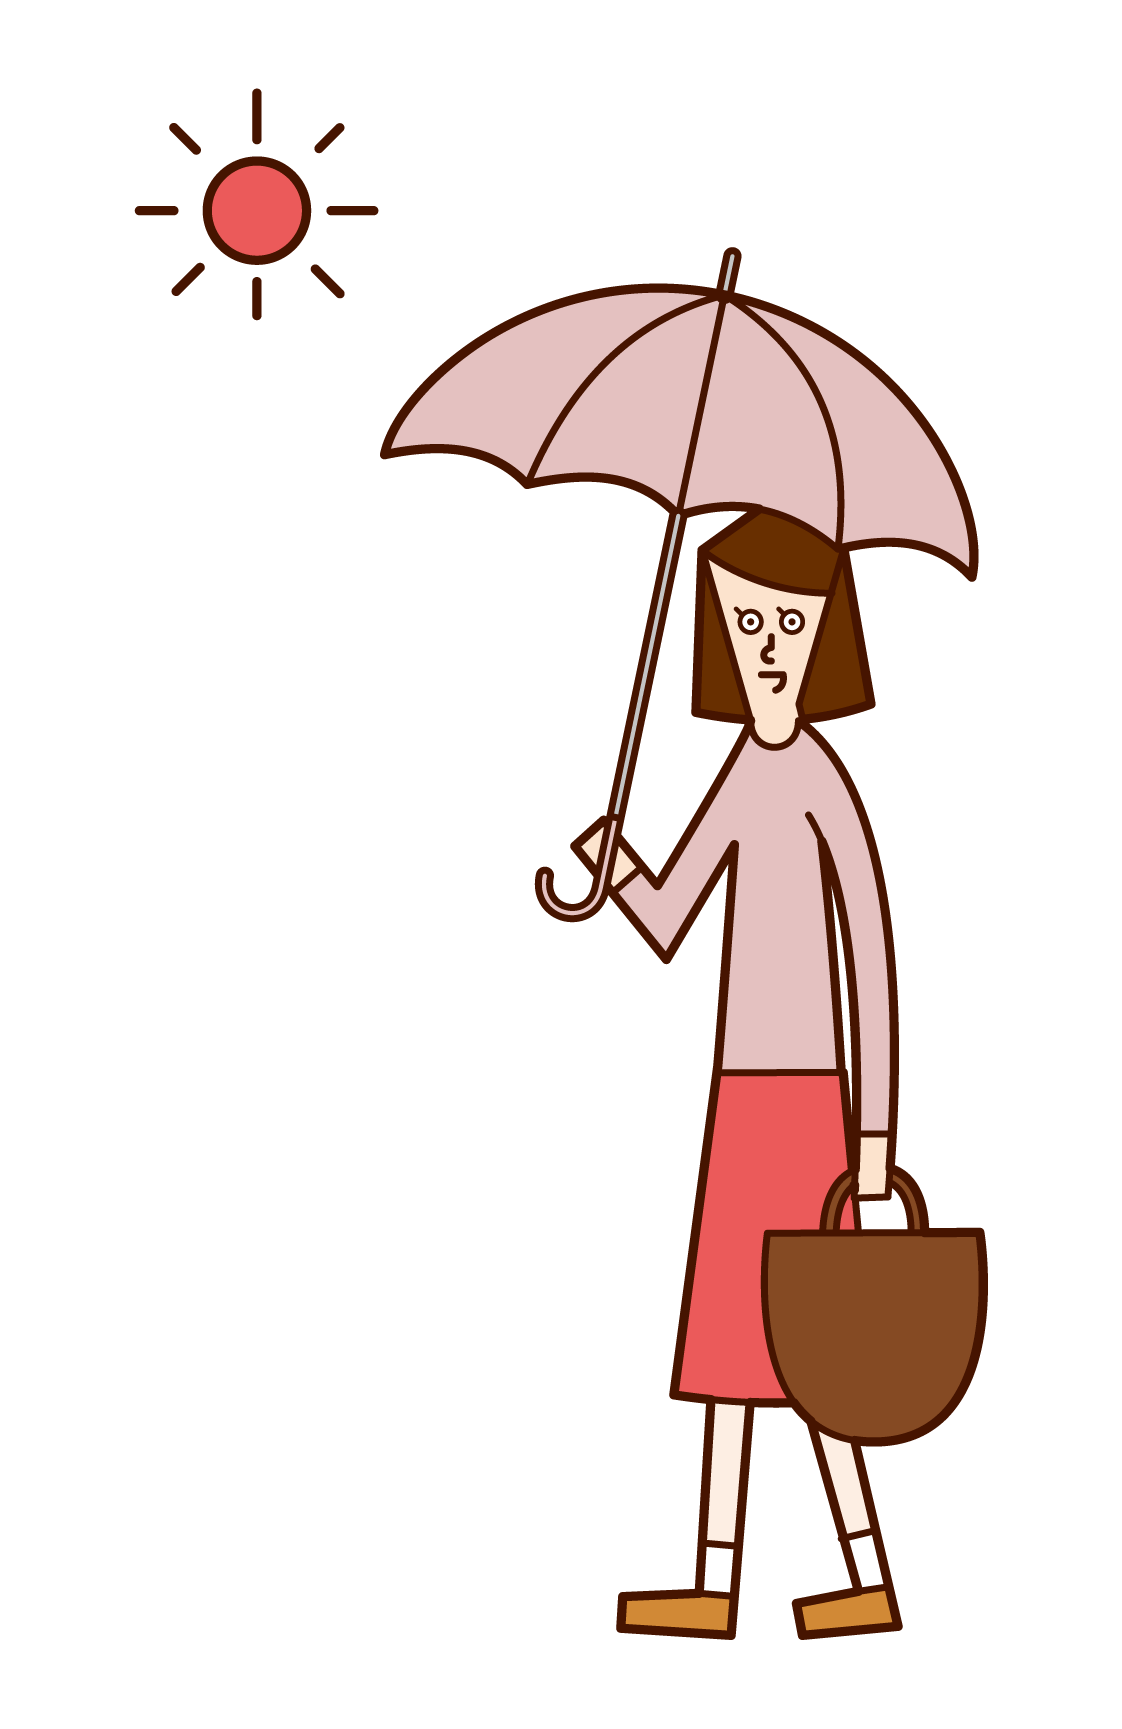 Illustration of a woman walking with a parasol